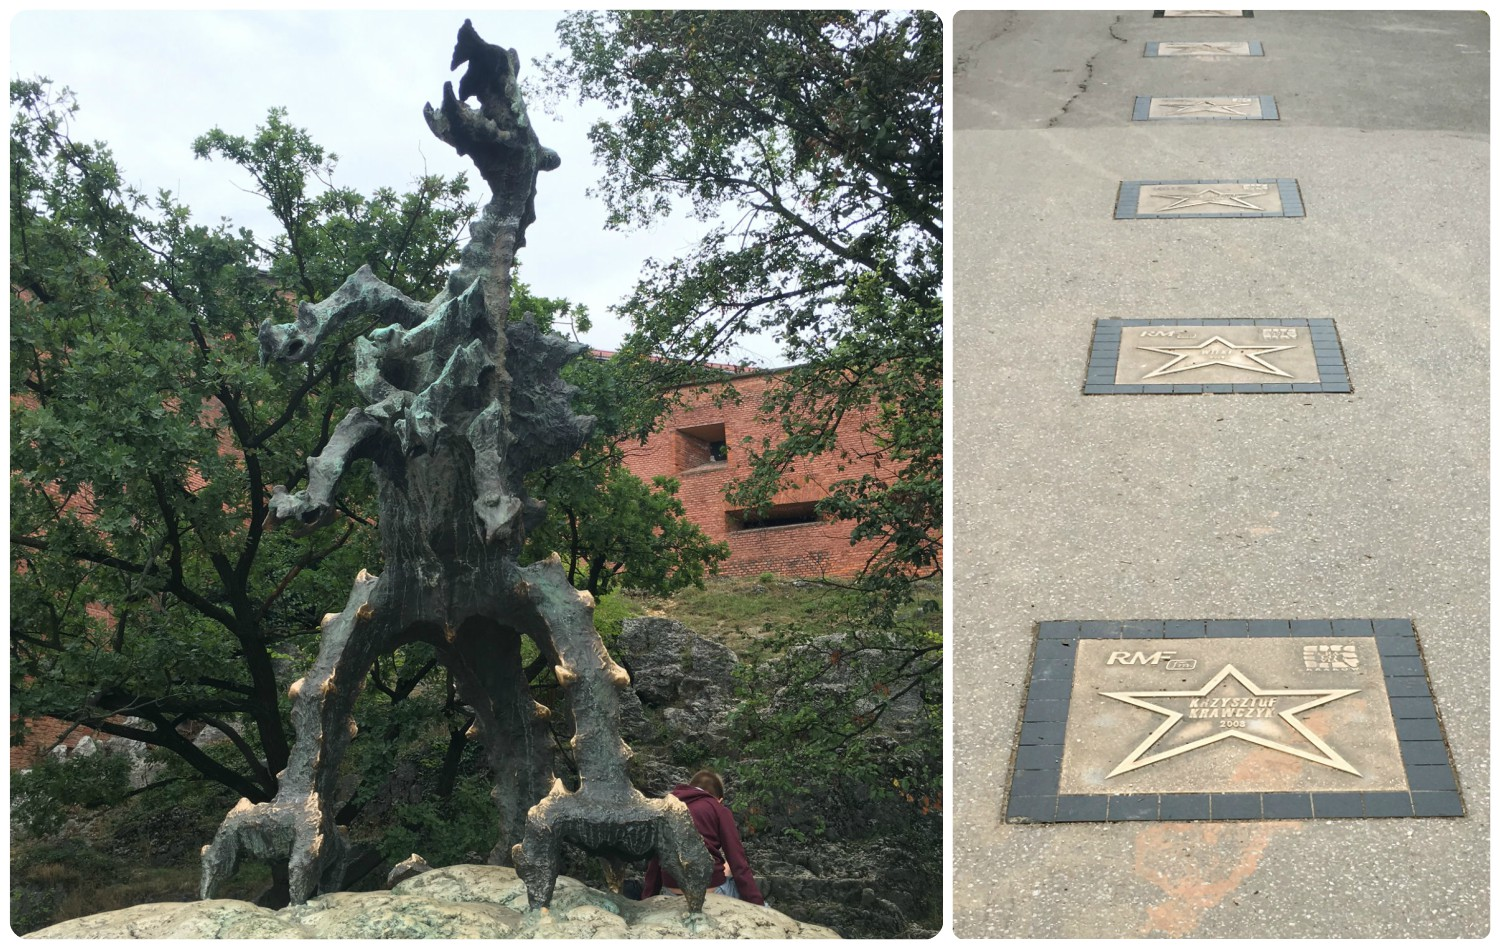 A short walk down hill from Wawel Cathedral and Wawel Castle in Krakow, Poland is Wawel Dragon, which kids love because it breaths real fire! Also, if you're interested in Polish celebrities, there's a walk of stars on the walkway along the river, just in front of the Wawel Dragon.